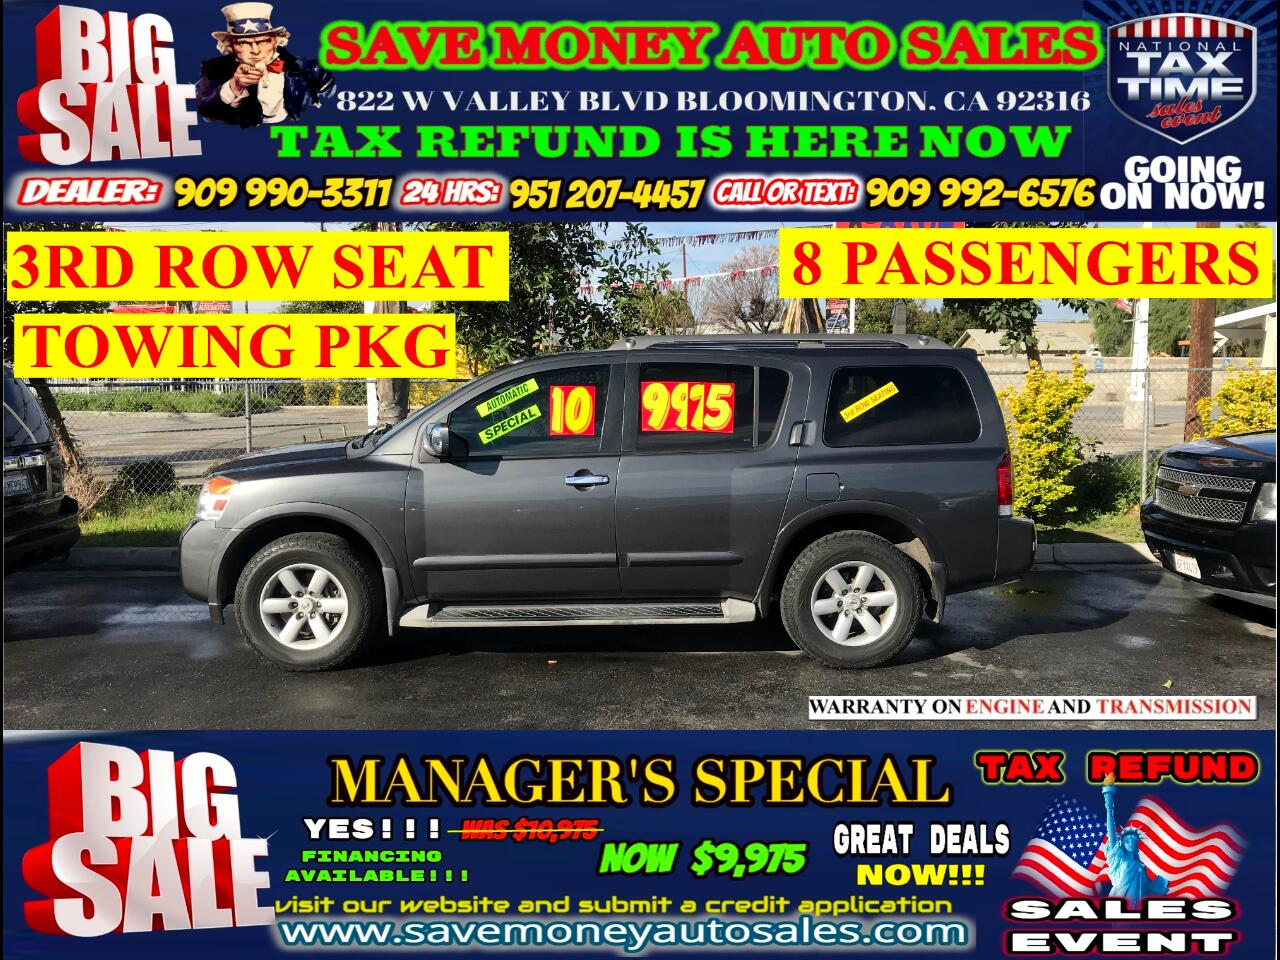 2010 Nissan Armada SE 2WD> 3RD ROW SEAT> 8 PASSENGERS> FULLY LOADED>